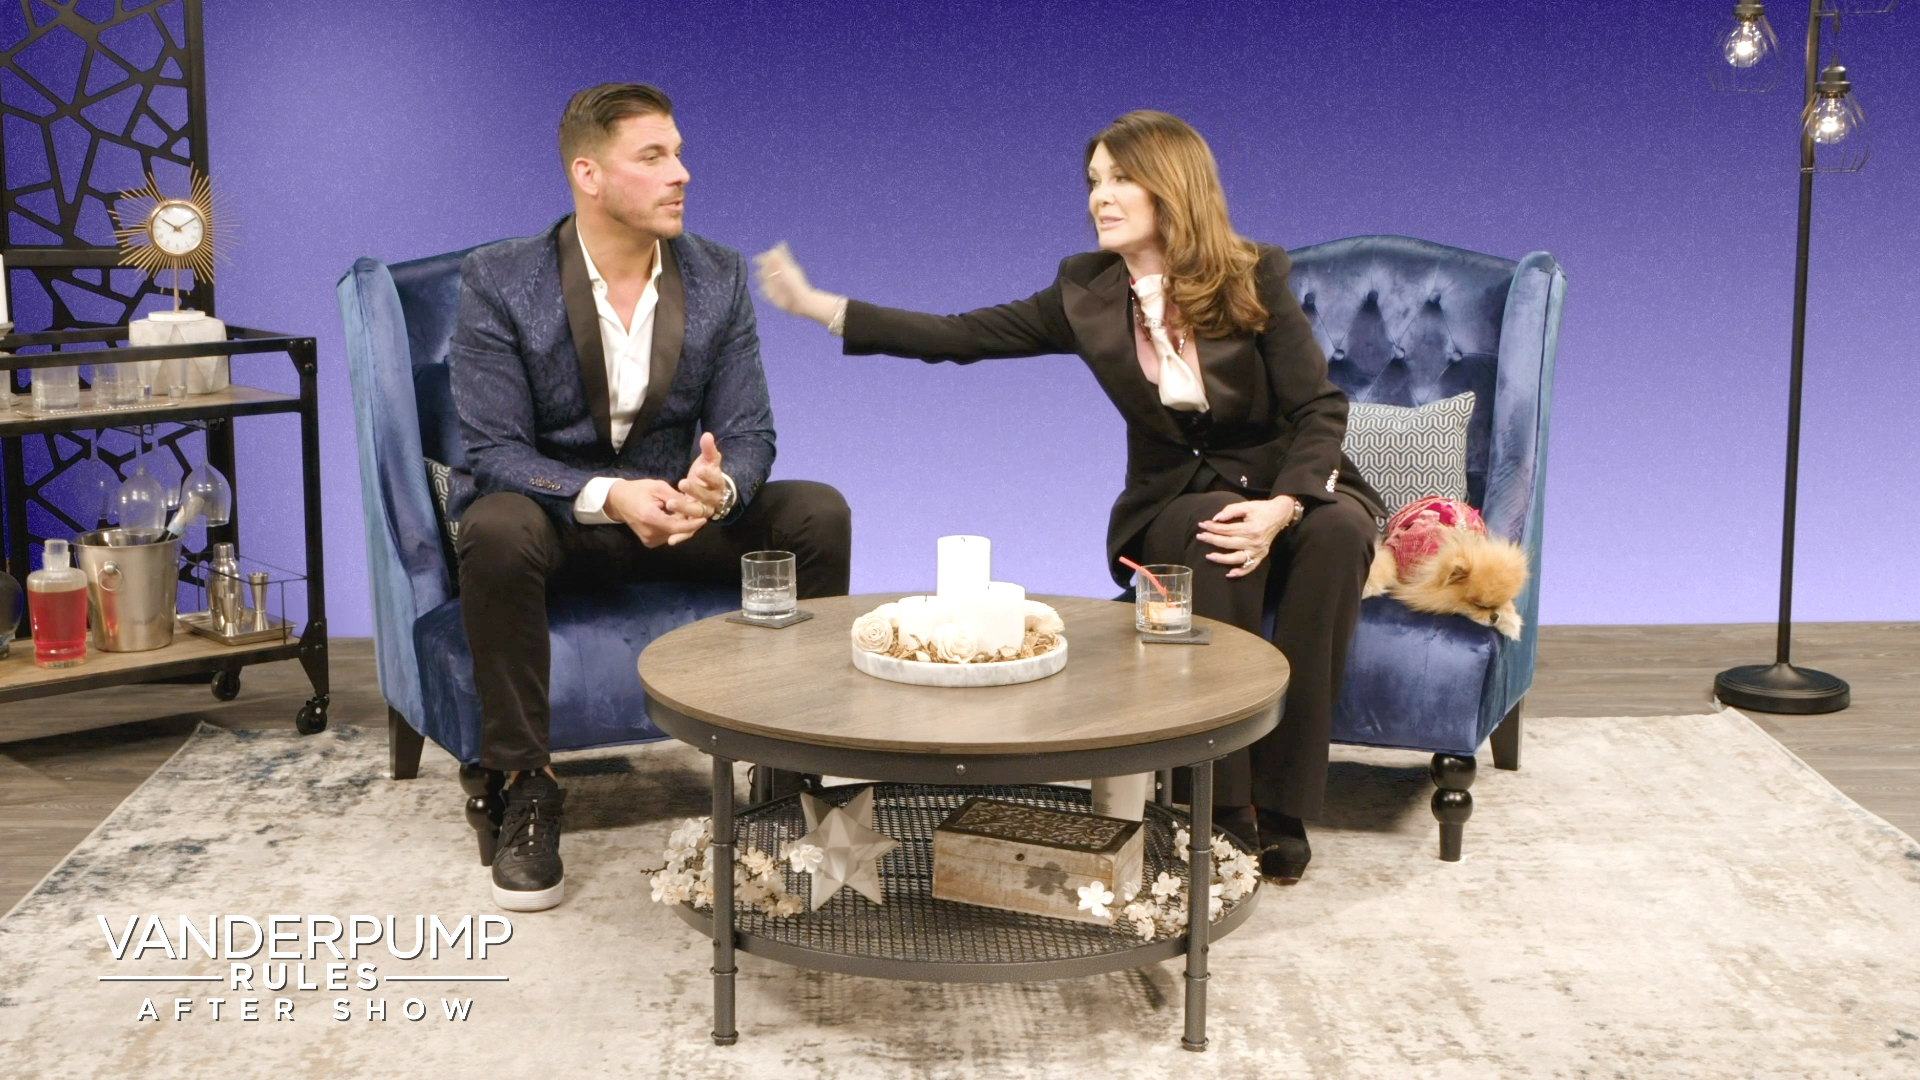 Jax Taylor Brags About His Personal Growth, But Lisa Vanderpump Has a Different Point of View